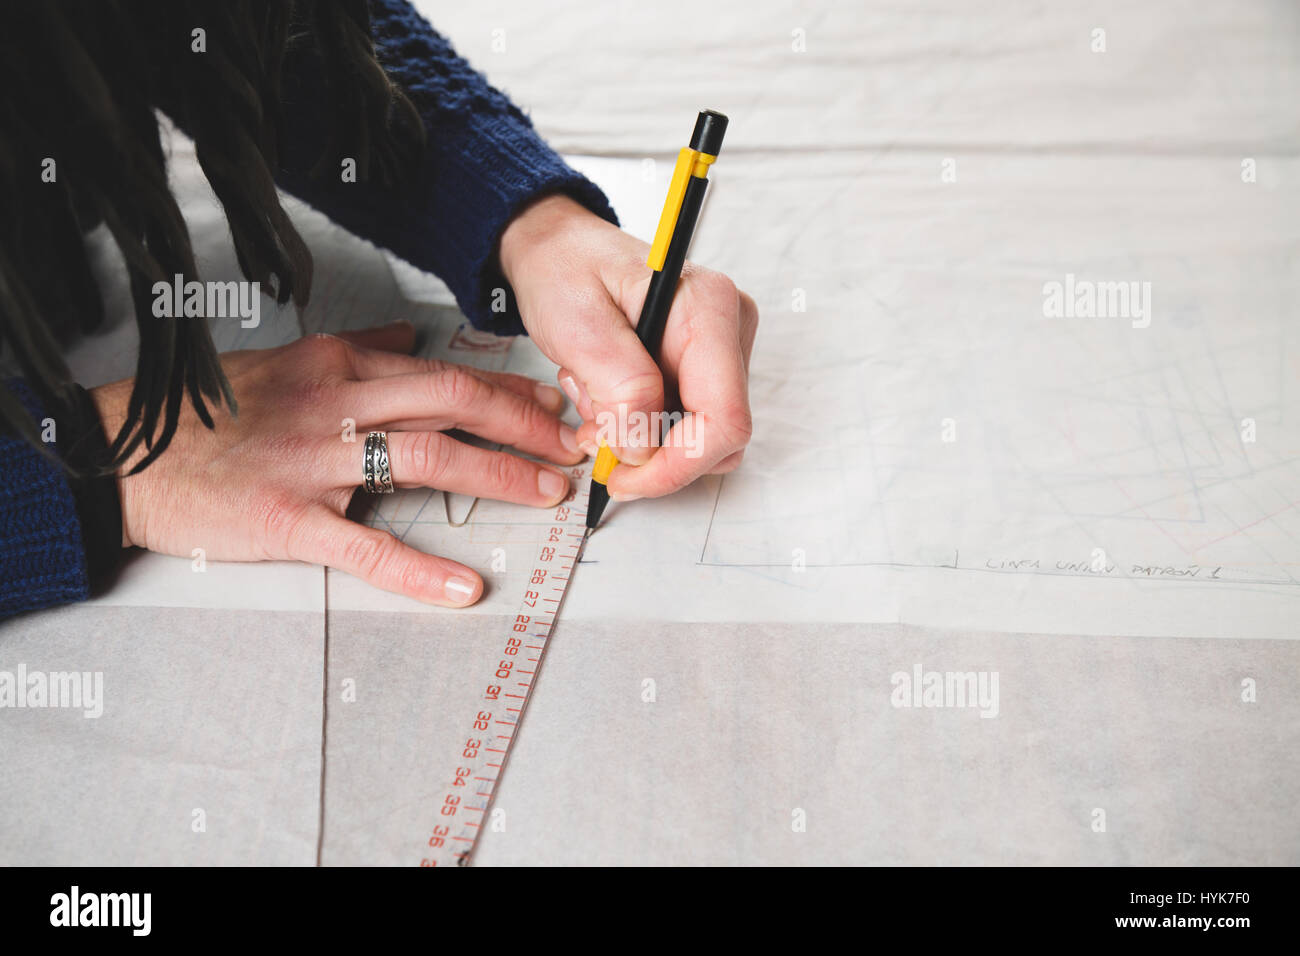 Hands of seamstress drawing templates in tracing paper using rules - Stock Image